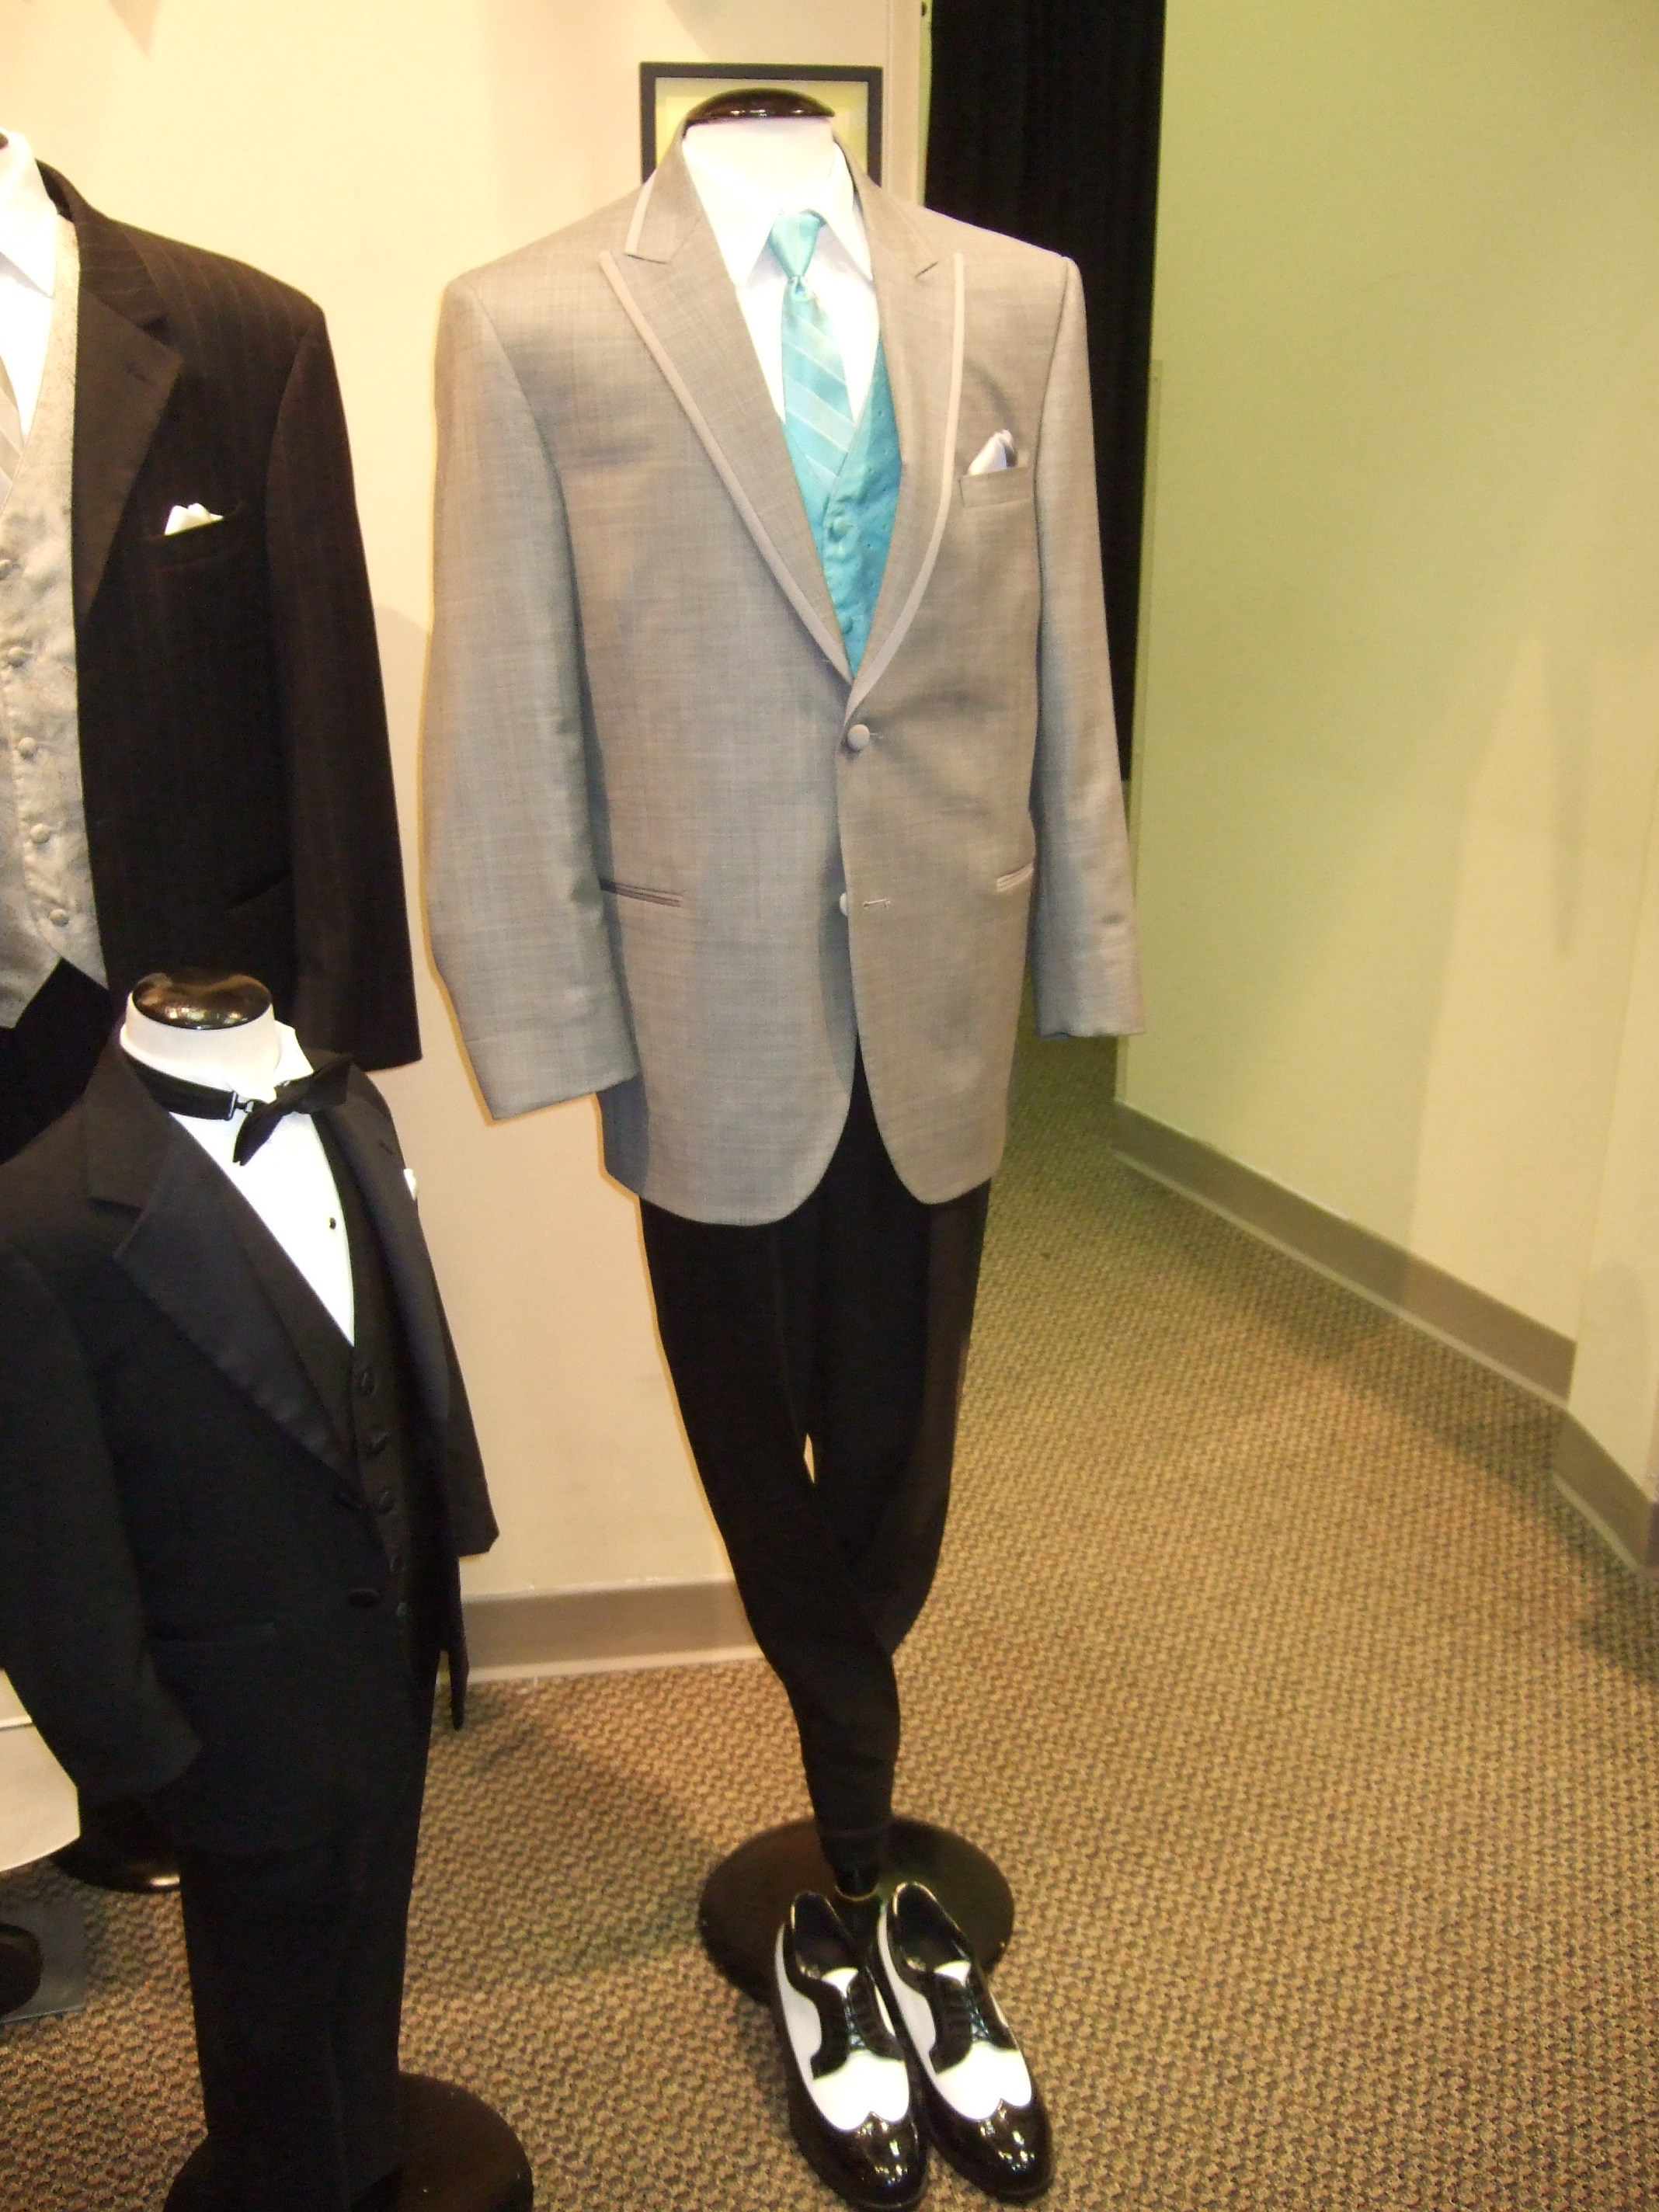 Fashion, Men's Formal Wear, Groomsmen, Tux